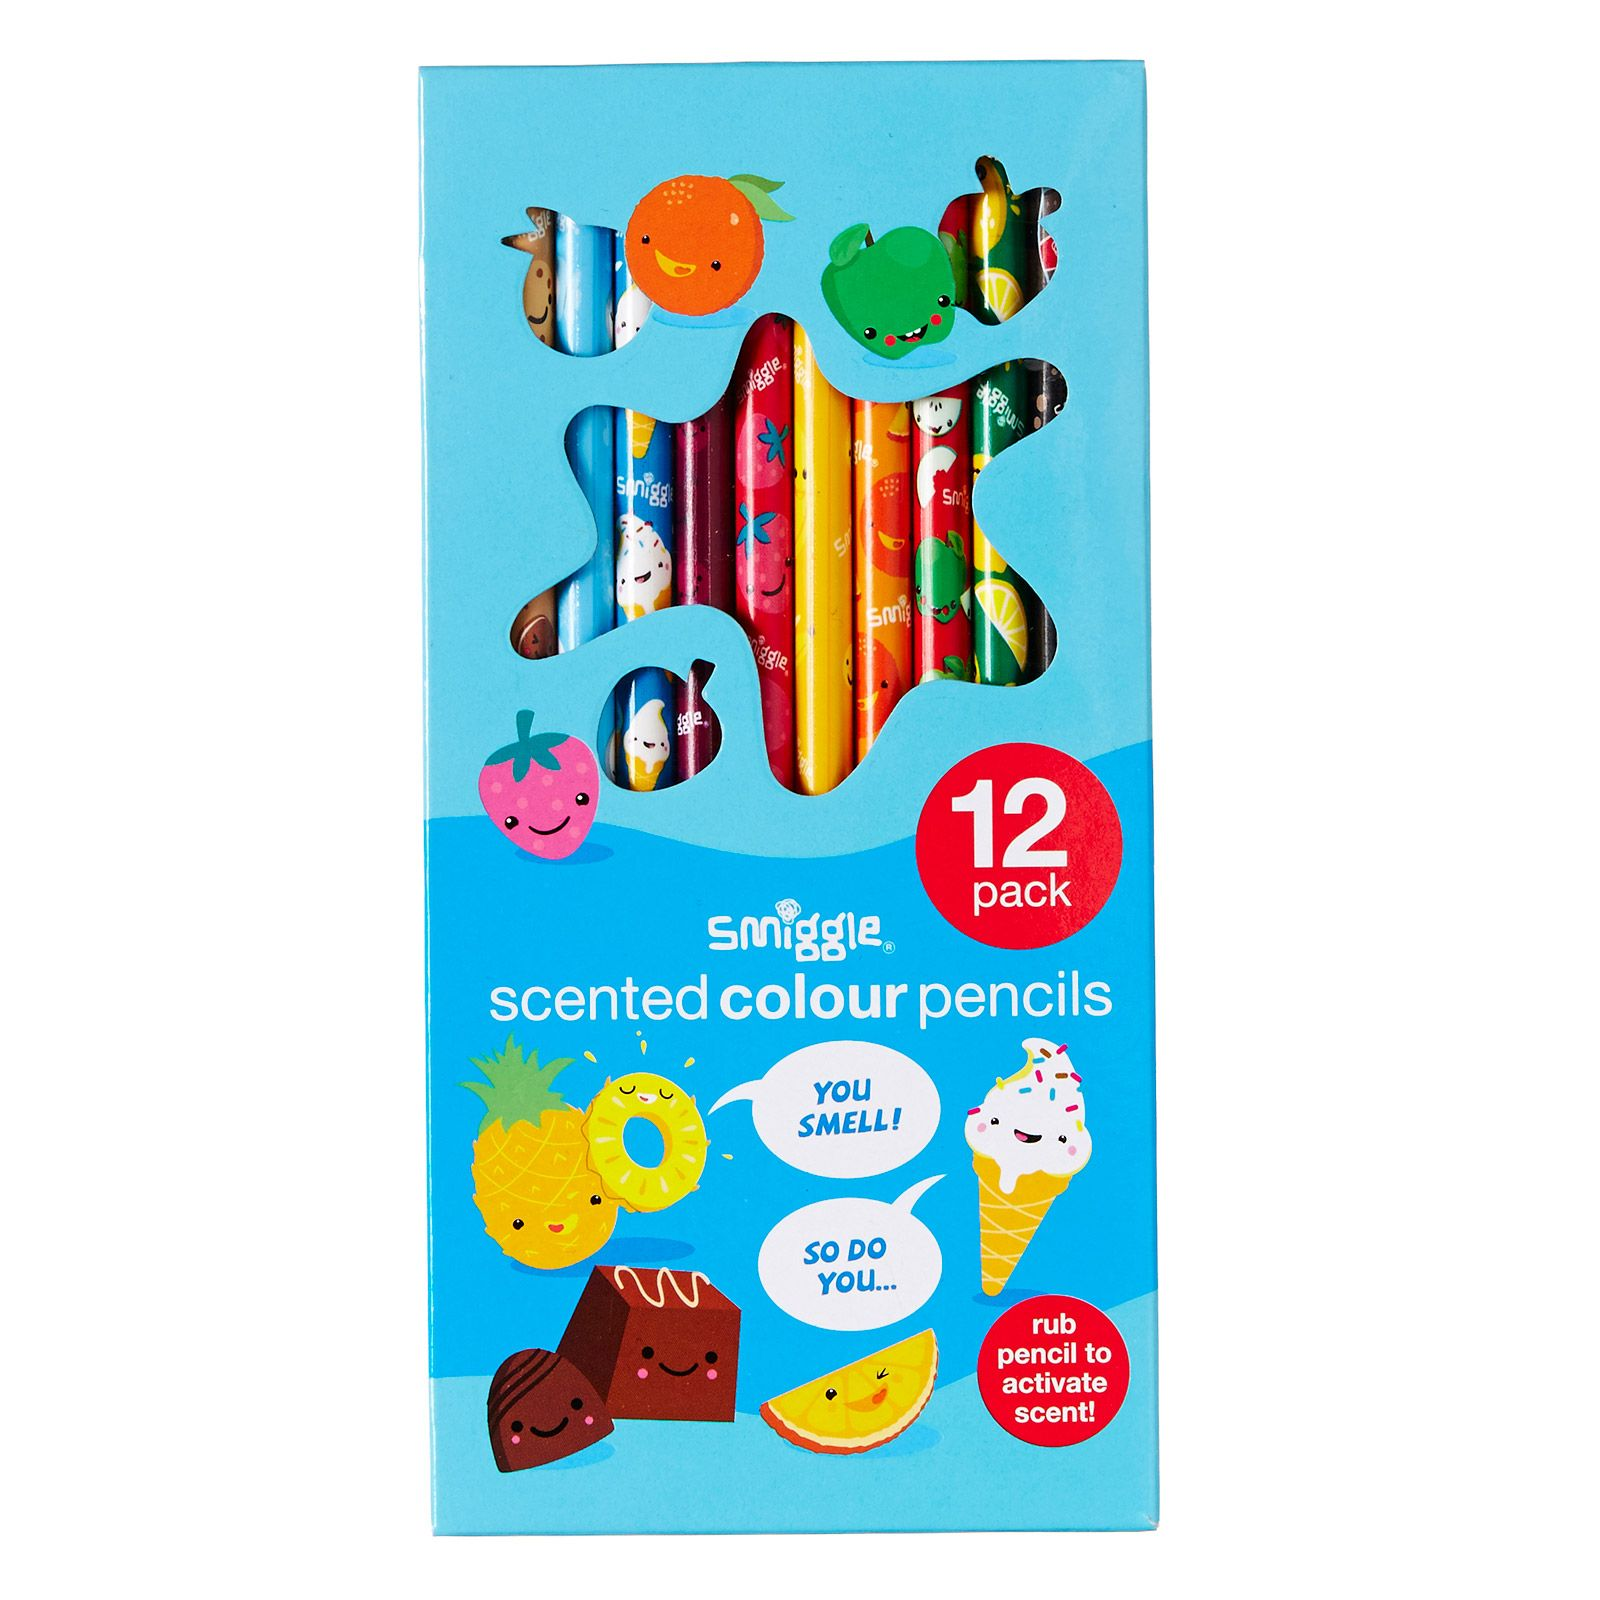 Image for scented pencil pack x12 from smiggle uk indigo